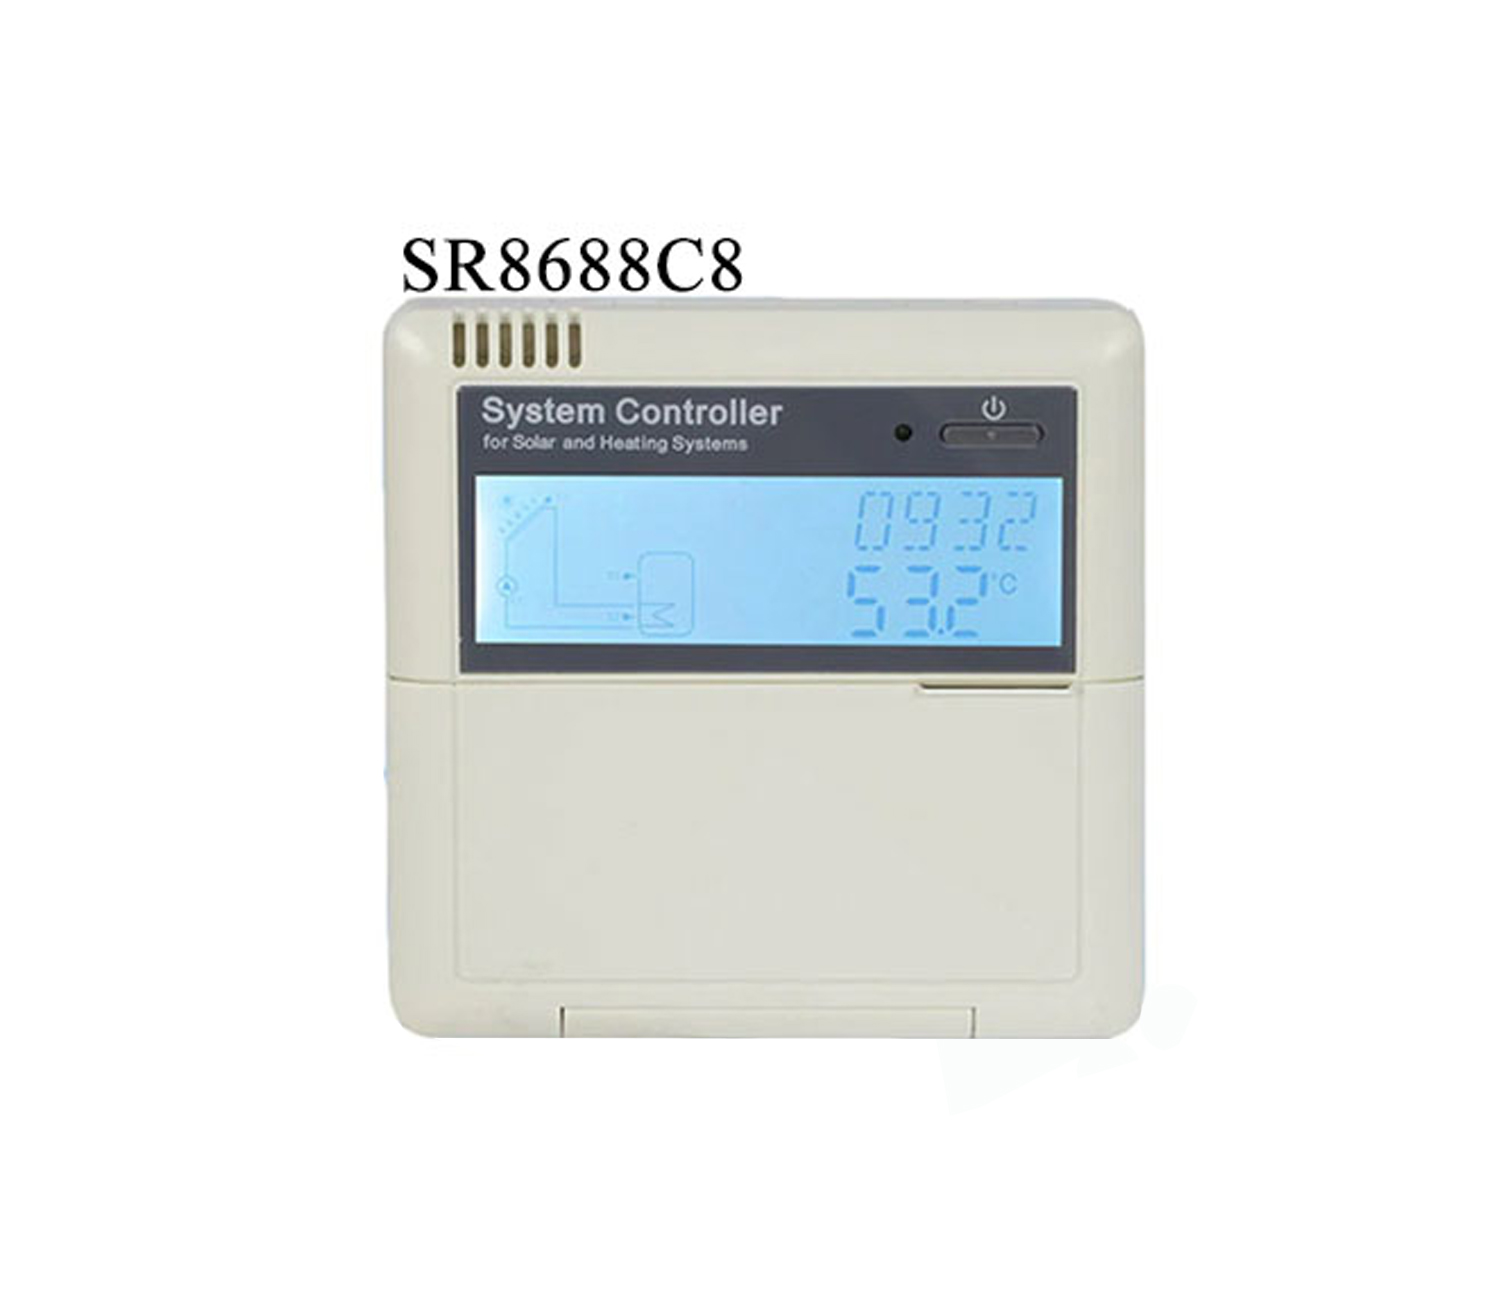 Solar hot water heater controller SR868C8